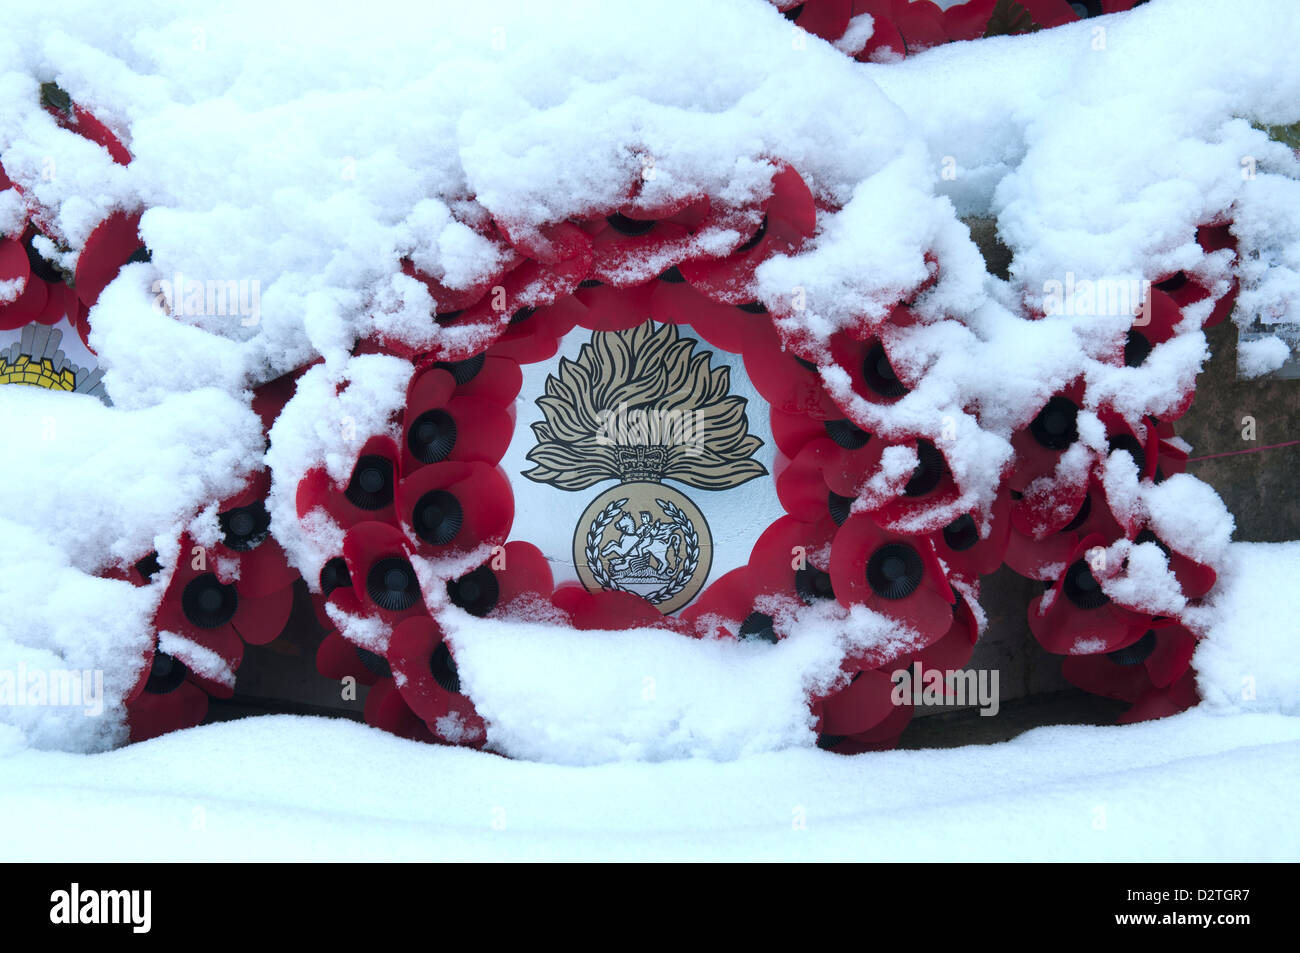 Poppy wreaths with snow on - Stock Image